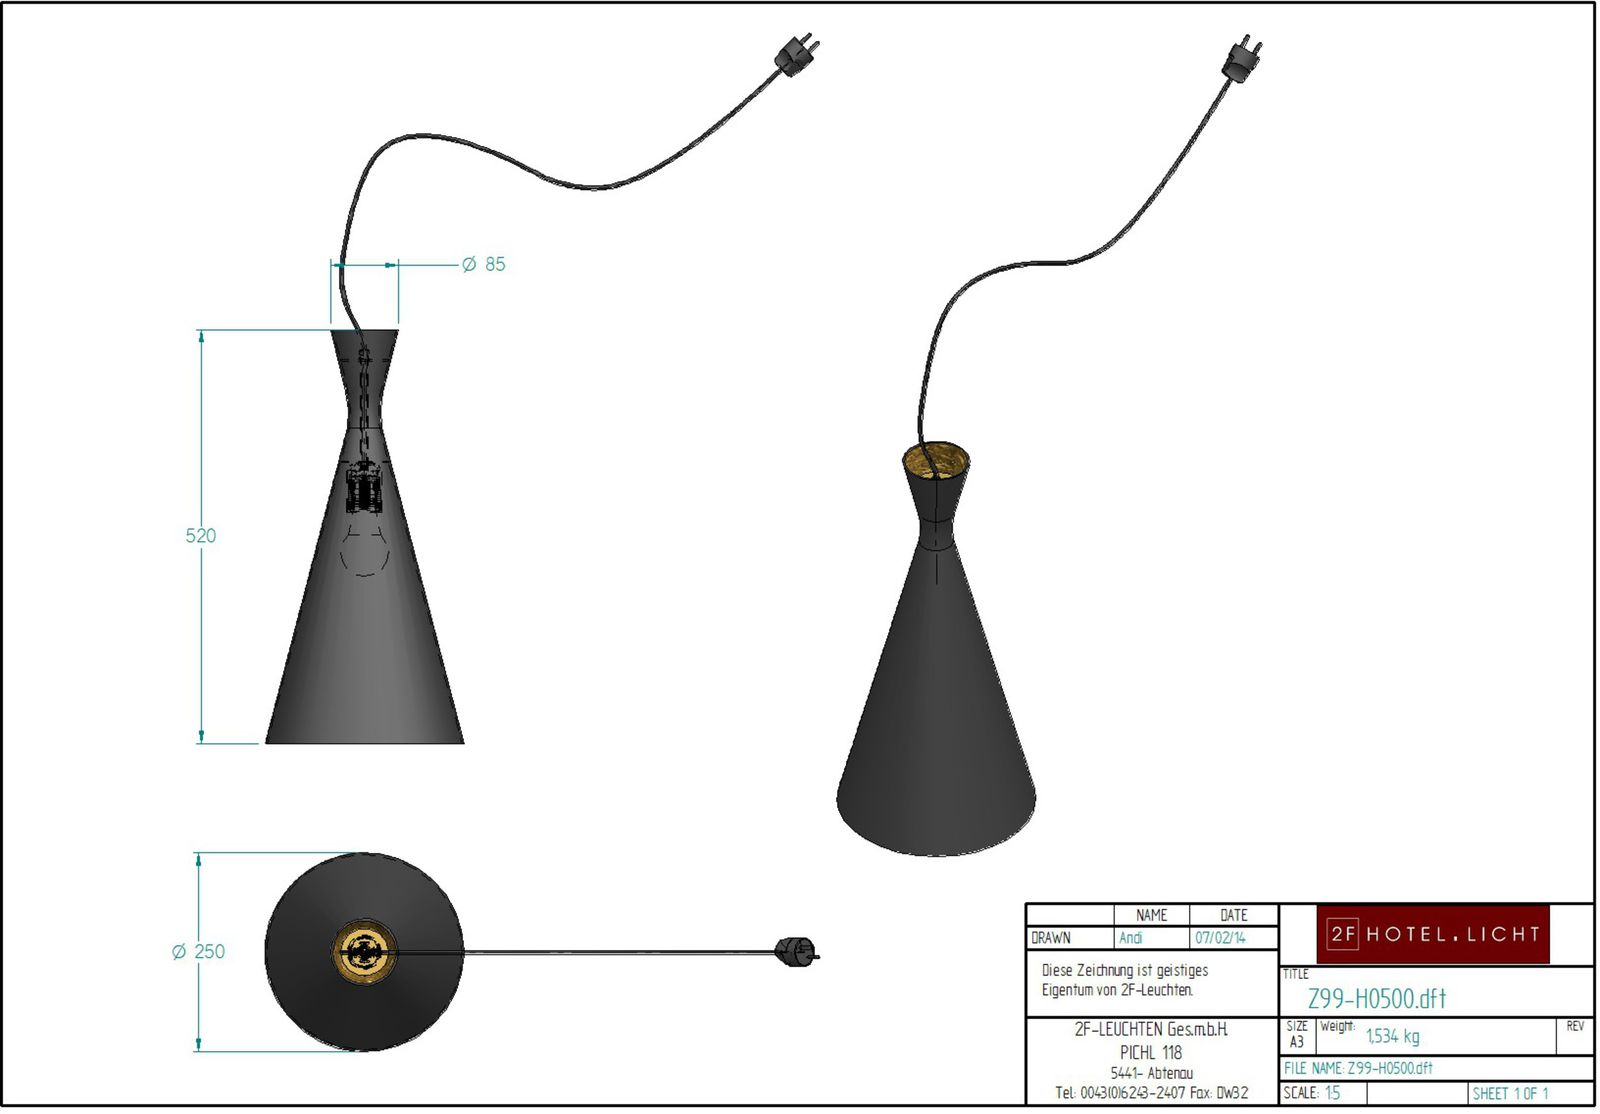 Pendant Lamp, L:Ø250mm, wide:Ø250mm, H:520mm, surface: Metall outside NCS8505-R2=B, inside trash metal, techn. Data: 1xE27, 8,5W LED, cable length: 6m, colour black